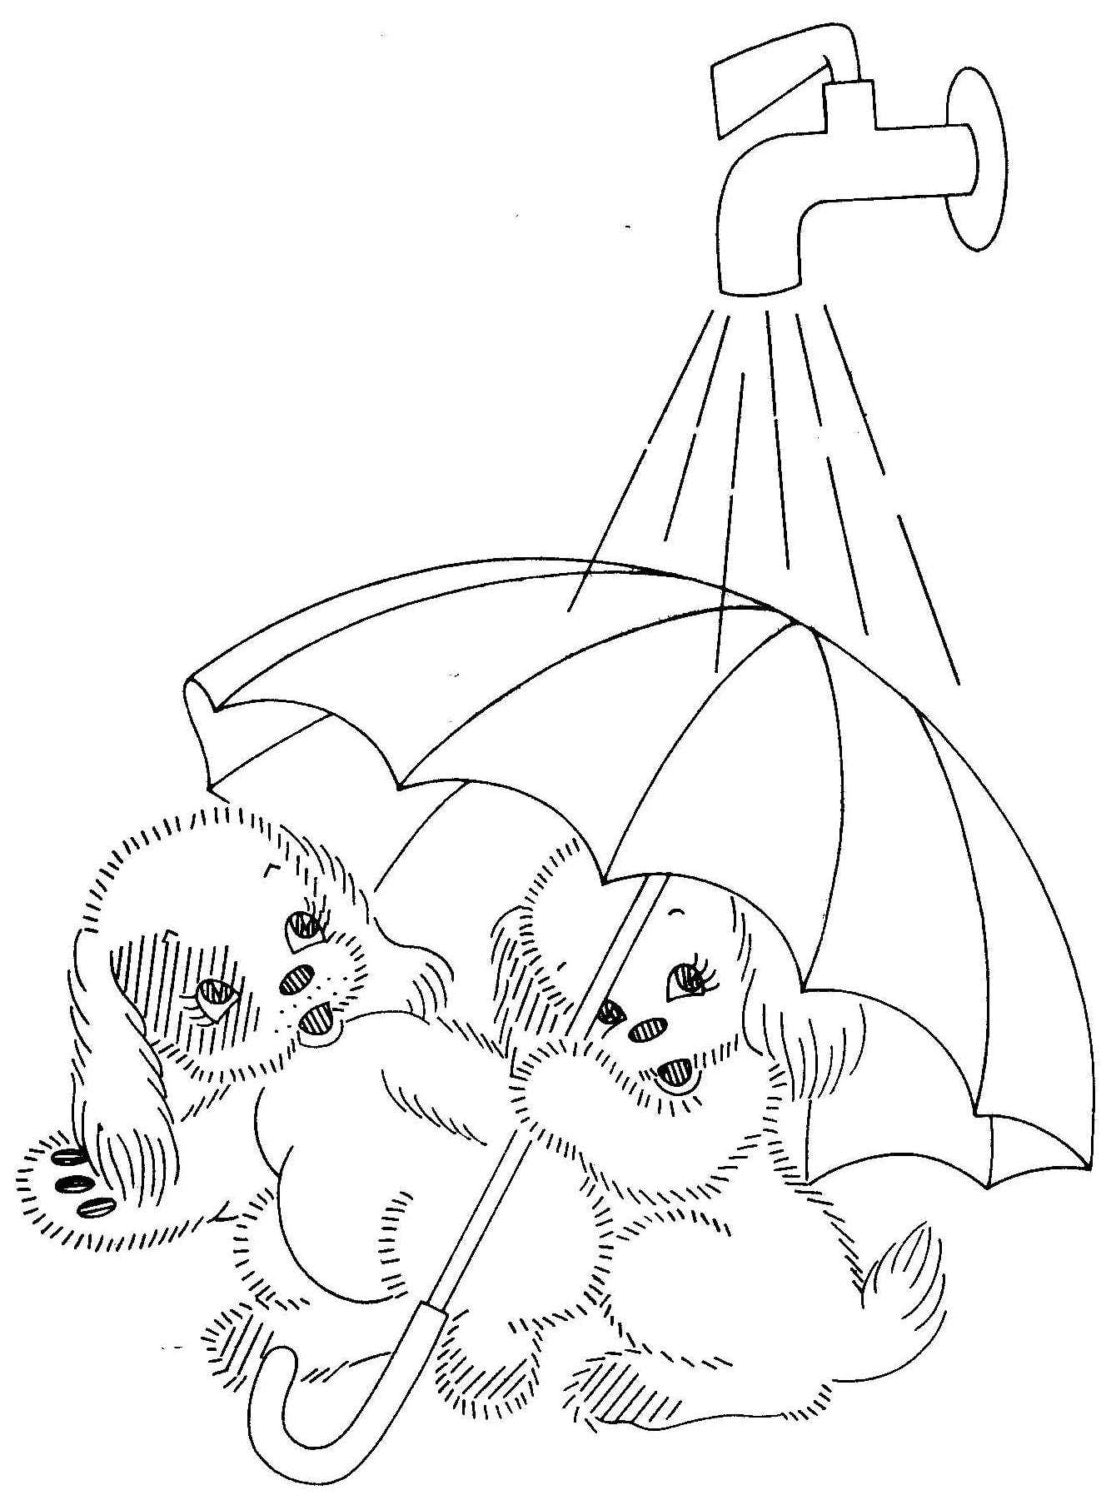 Vintage hand embroidery pattern pdf file 7259 adorable puppies - Free embroidery designs for kitchen towels ...